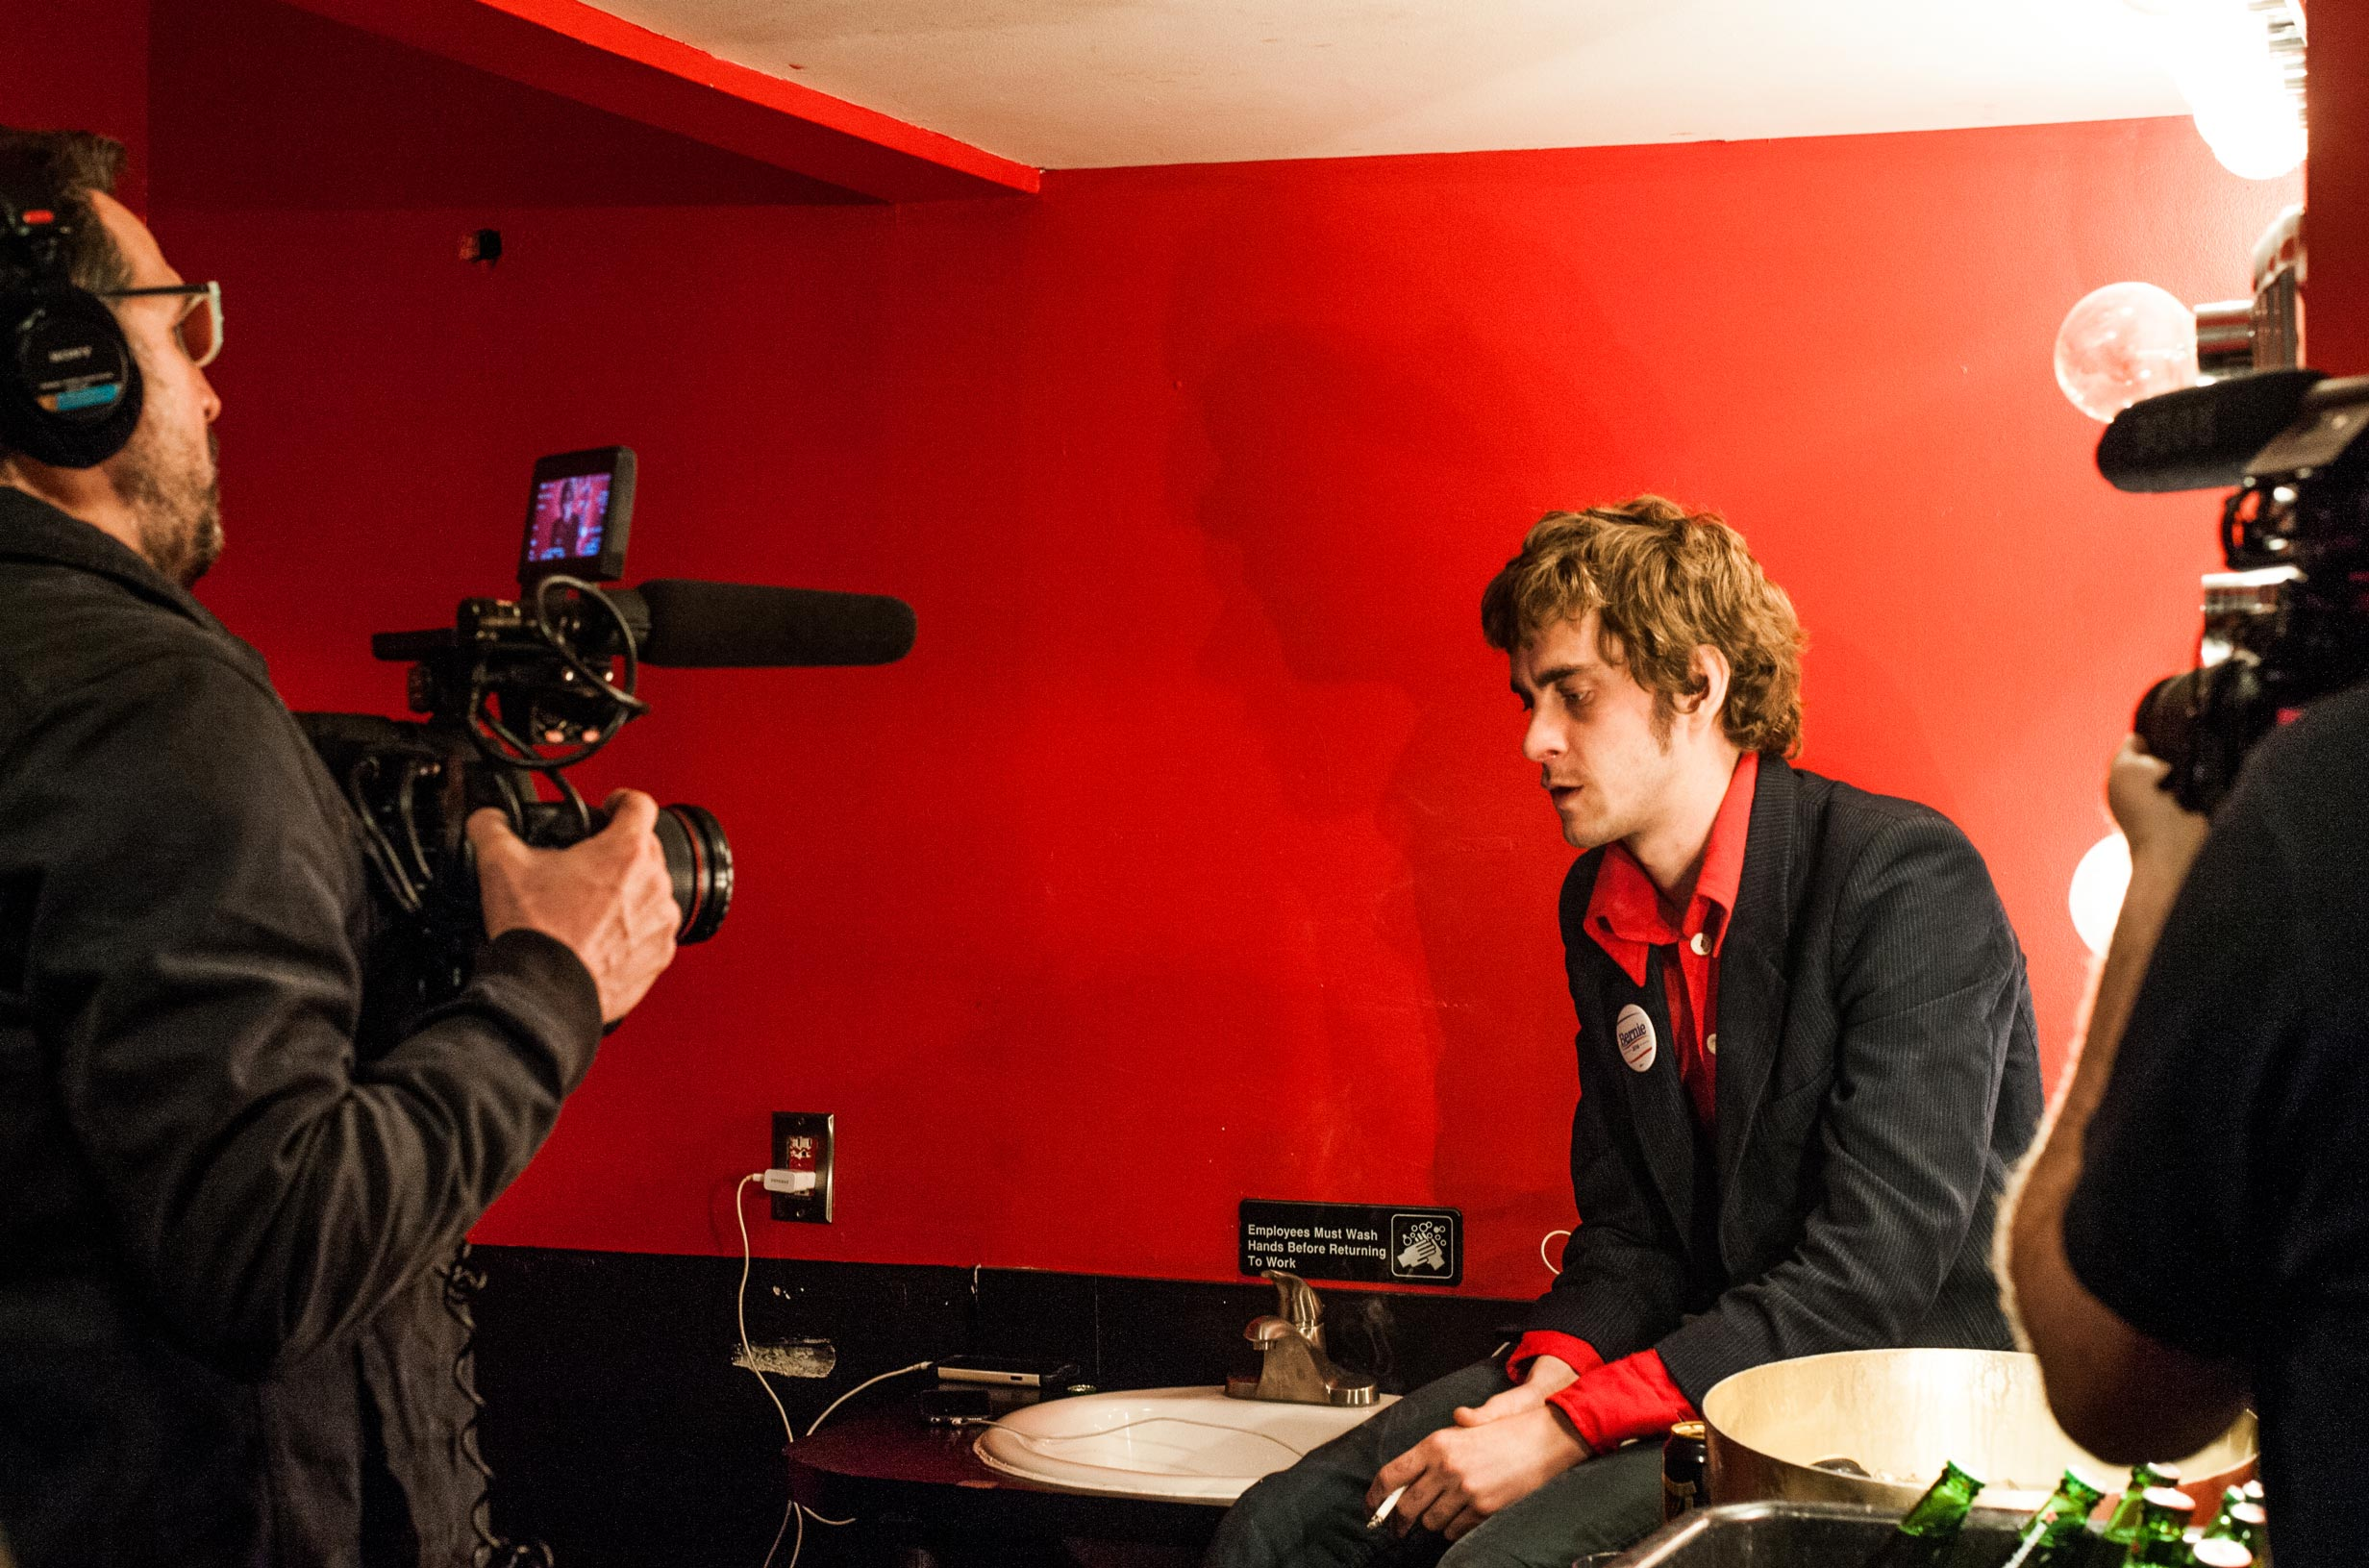 Saul being interviewed at Le Poisson Rouge, New York.